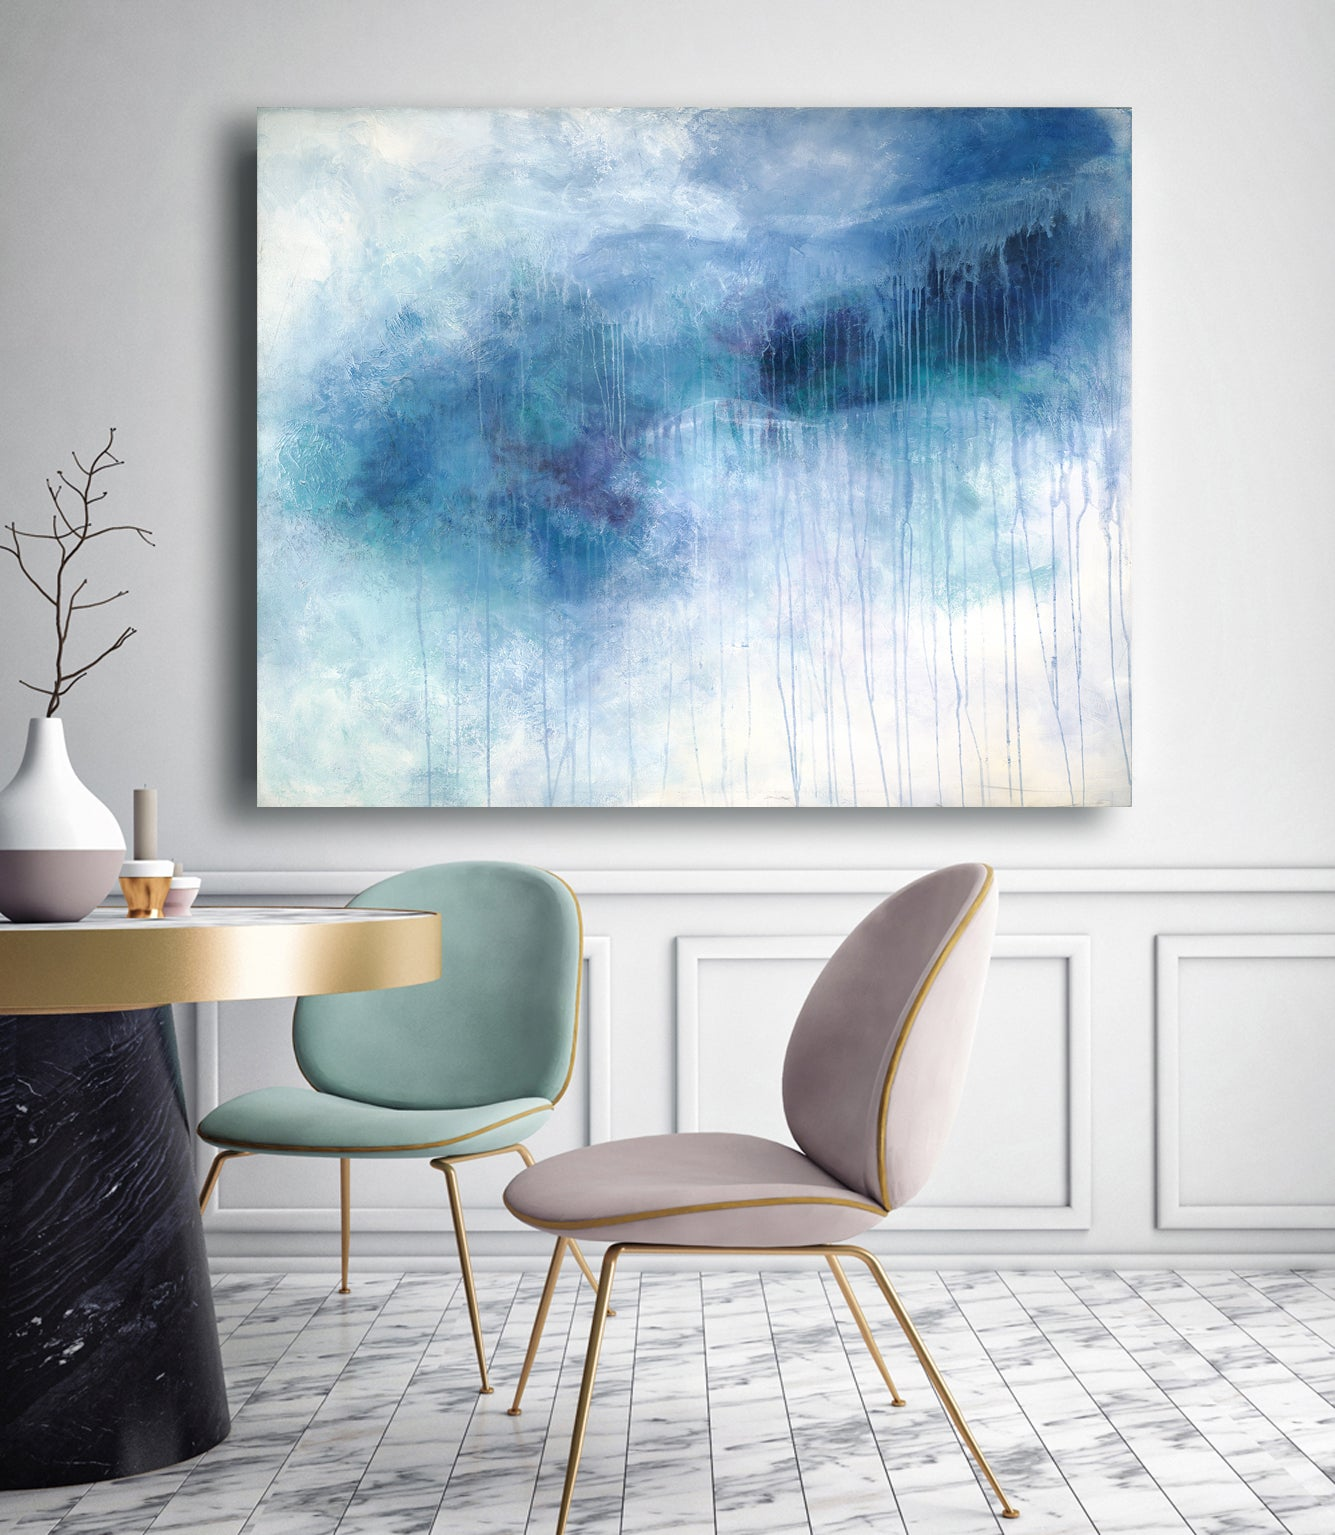 'Aspen Snow' Large Contemporary Abstract Minimalist Acrylic Painting